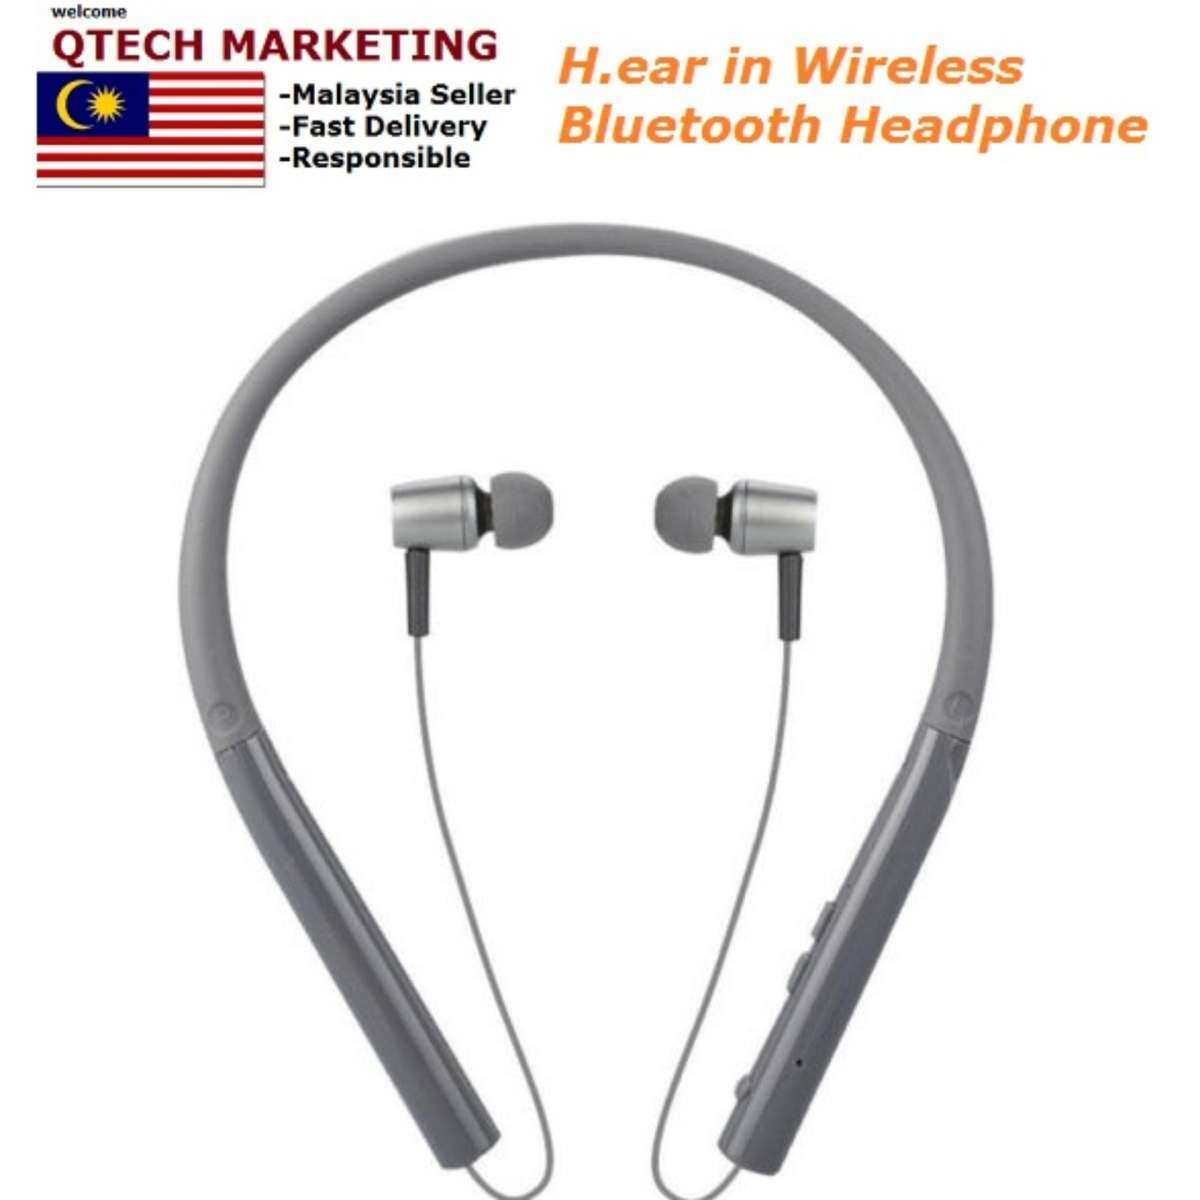 In Ear Headphone For Sale Headphones Prices Brands Specs Sony Mdr Ex750bt Hear Wireless Bluetooth Behind The